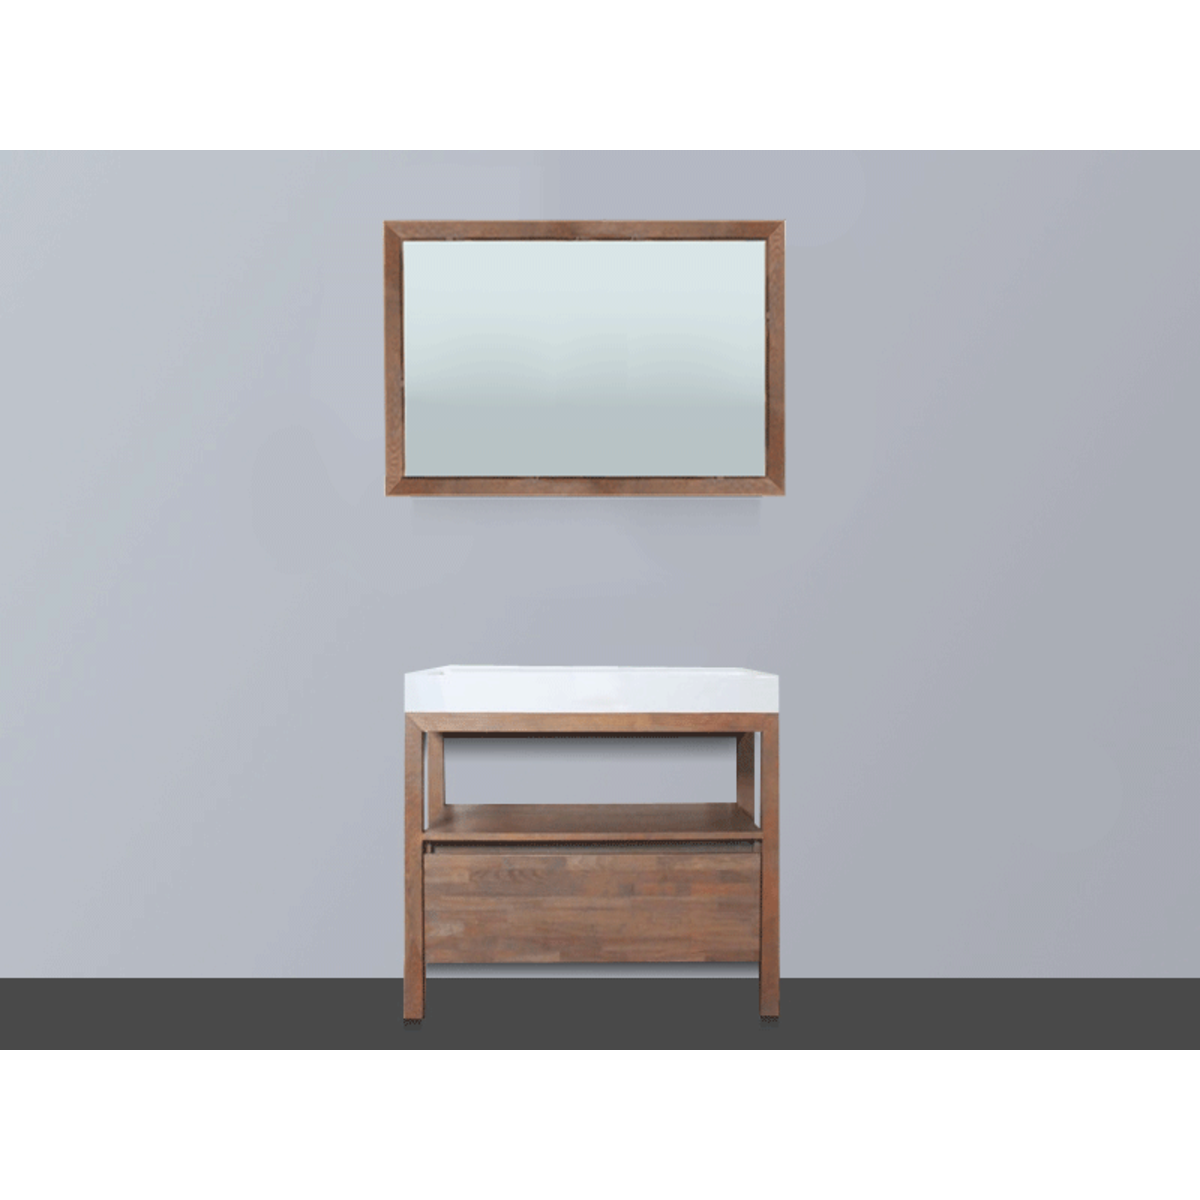 Saniclass natural wood meuble avec miroir 80cm grey wash for Miroir 1 metre